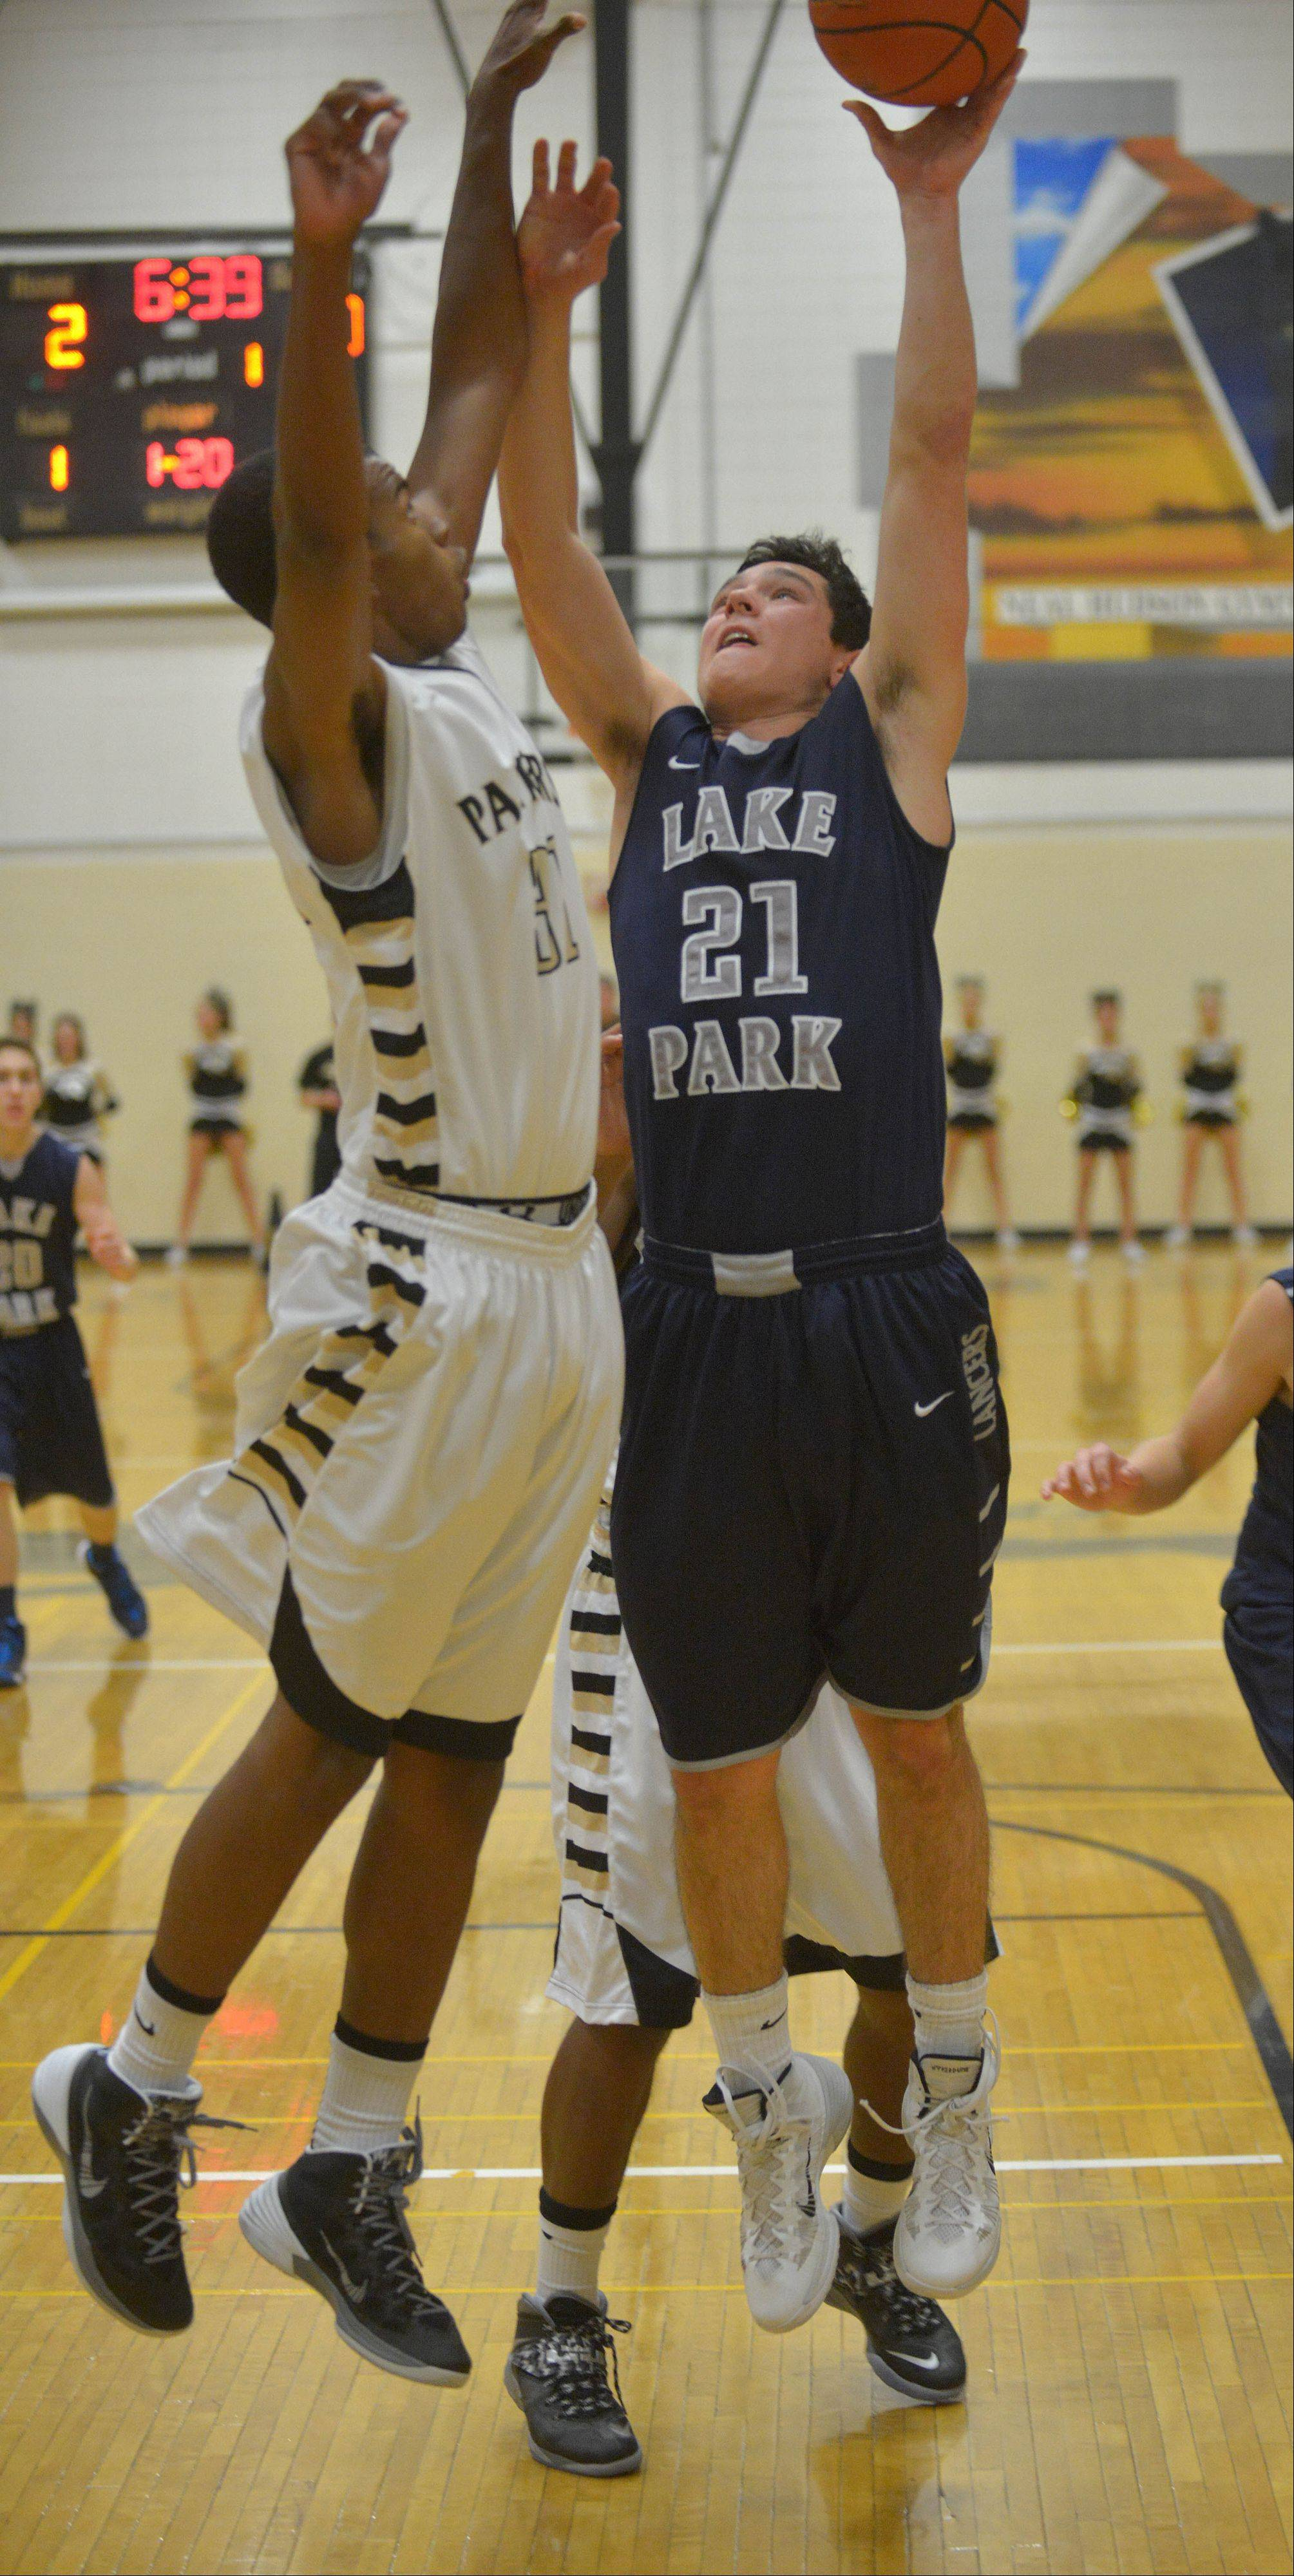 Chip Flanigan of Glenbard North and Michael Karas of Lake Park go for a rebound during the Lake Park at Glenbard North boys basketball game Friday.